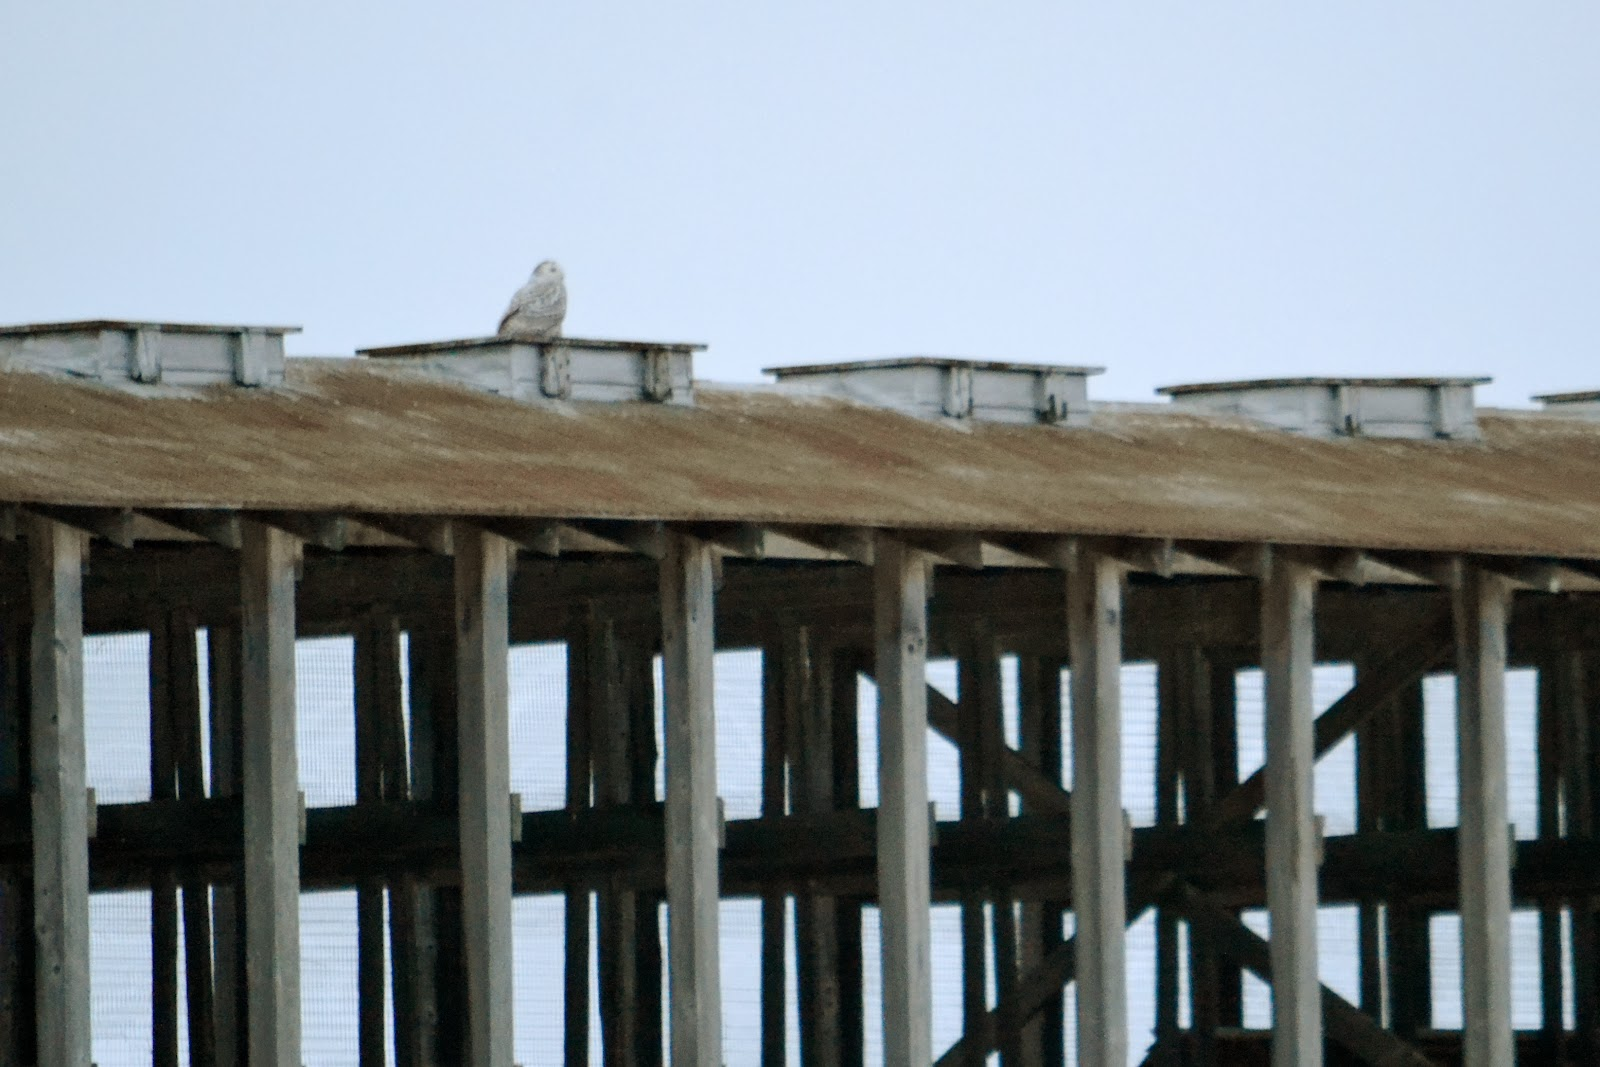 snowy owl sitting on a shed roof